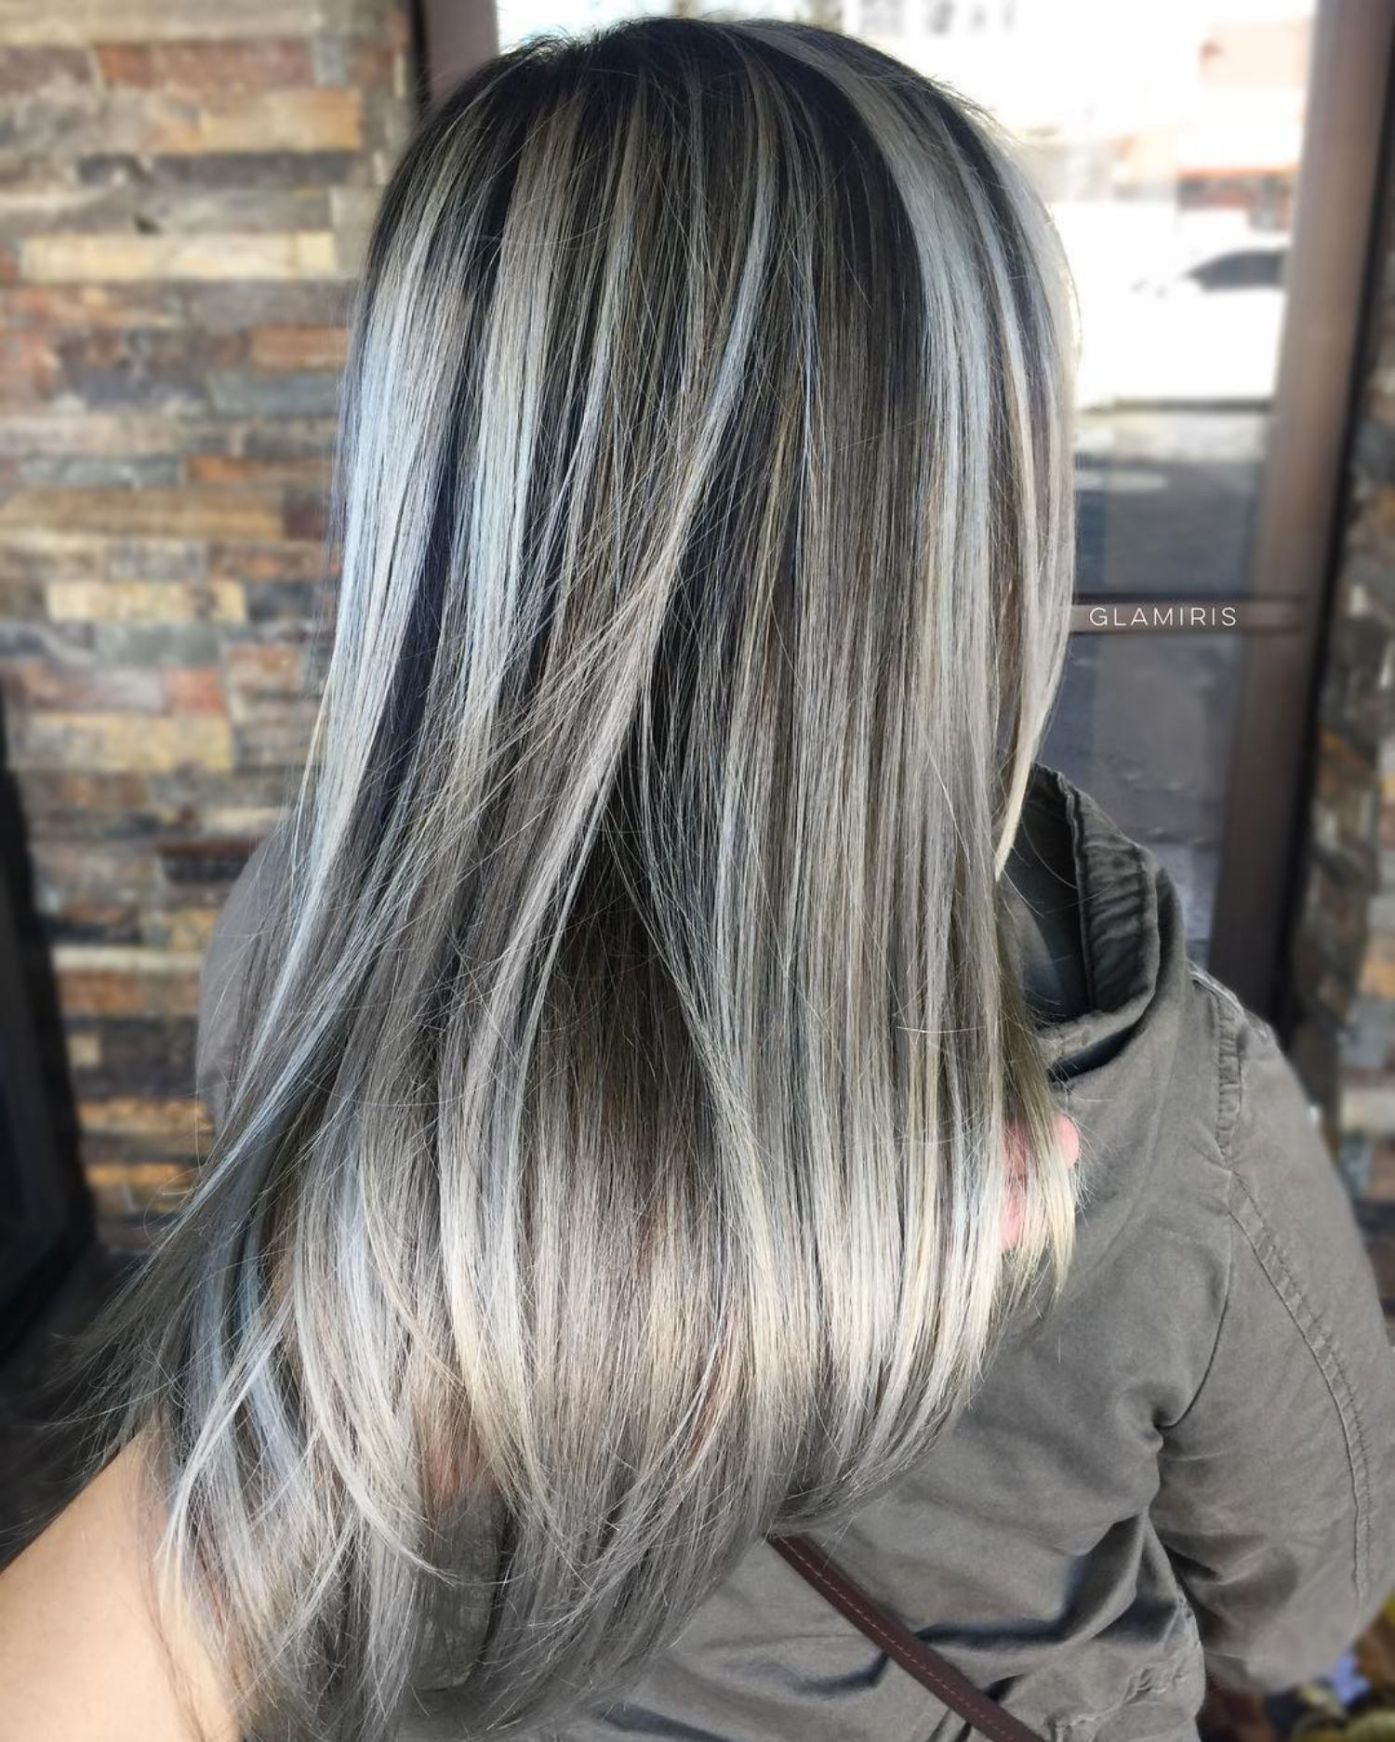 60 Shades Of Grey Silver And White Highlights For Eternal Youth Brown Hair With Ash Blonde Highlights Ash Gray Hair Color Ash Blonde Highlights